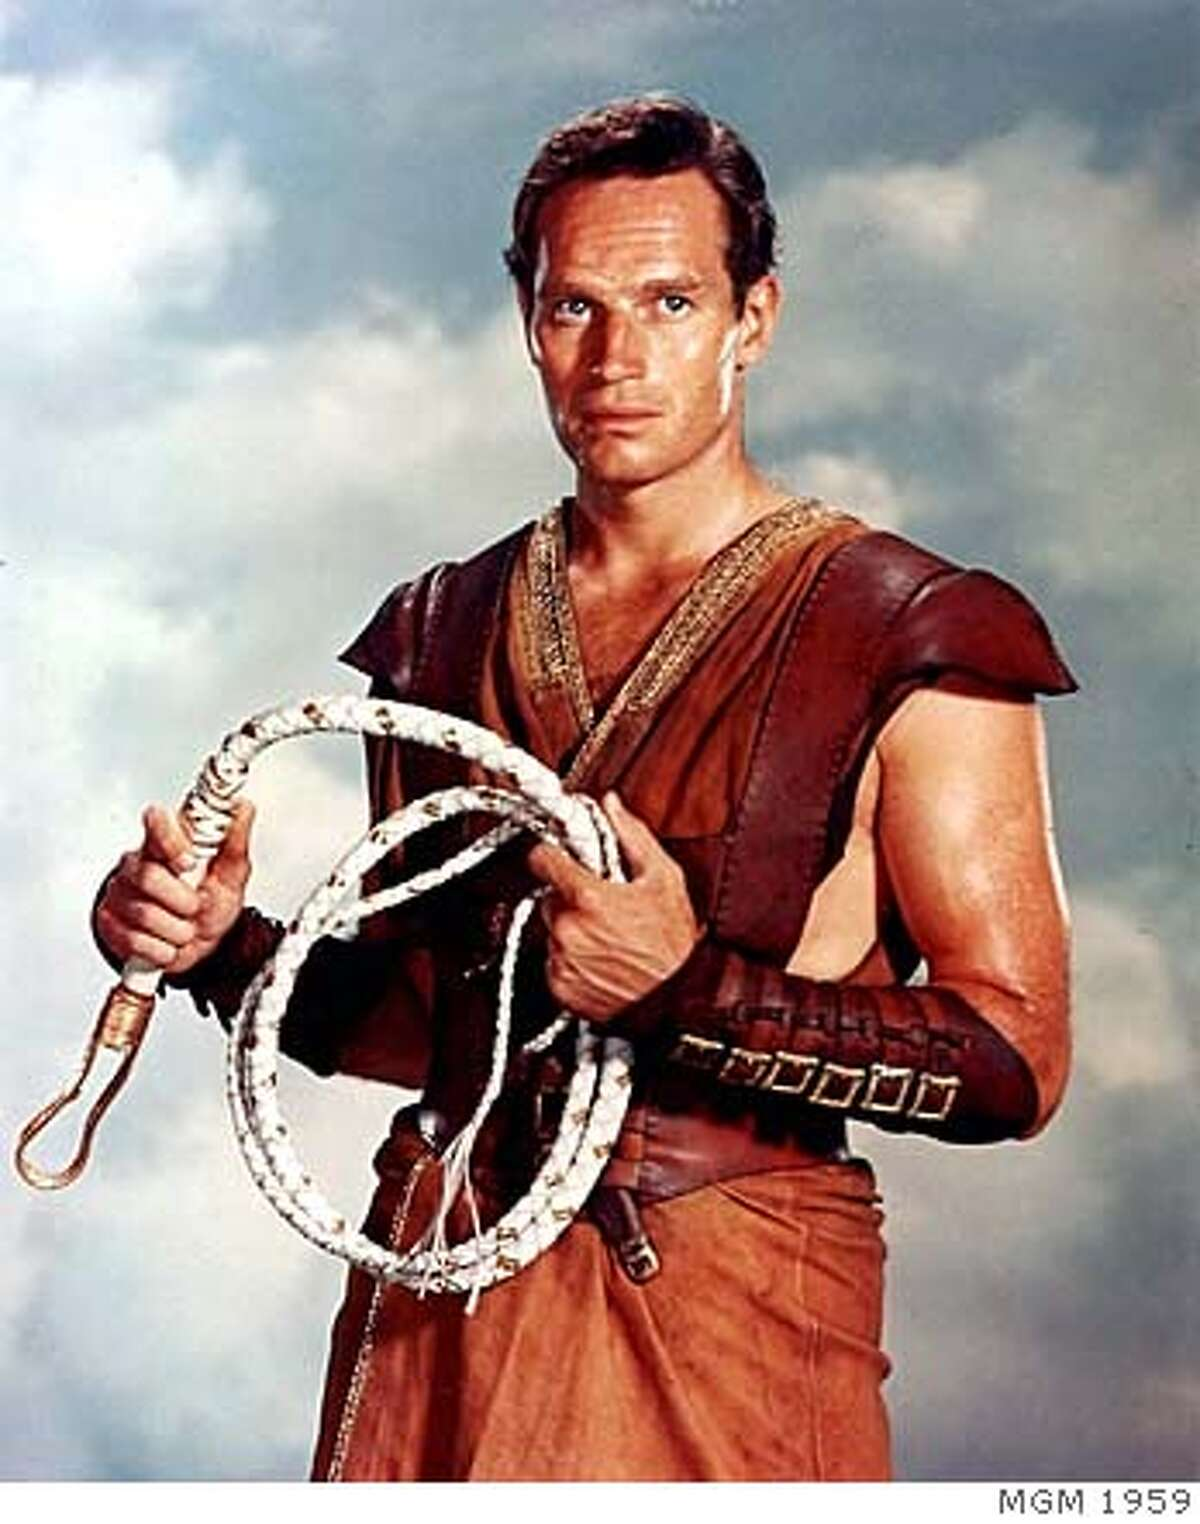 """###Live Caption:(NYT7) UNDATED -- April 6, 2008 -- OBIT-HESTON-7 -- Charton Heston in the title role in """"Ben-Hur."""" Heston, who appeared in some 100 films in his 60-year acting career but who is remembered chiefly for his monumental, jut-jawed portrayals of Moses, Ben-Hur and Michelangelo, died Saturday night, April 5, 2008, at his home in Beverly Hills, Calif. He was 84, according to his family. (MGM via The New York Times) EDITORIAL USE ONLY - MAGS OUT/NO SALES - FOR USE ONLY WITH STORY SLUGGED: OBIT-HESTON BY ROBERT BERKVIST - ALL OTHER USE PROHIBITED###Caption History:(NYT7) UNDATED -- April 6, 2008 -- OBIT-HESTON-7 -- Charton Heston in the title role in """"Ben-Hur."""" Heston, who appeared in some 100 films in his 60-year acting career but who is remembered chiefly for his monumental, jut-jawed portrayals of Moses, Ben-Hur and Michelangelo, died Saturday night, April 5, 2008, at his home in Beverly Hills, Calif. He was 84, according to his family. (MGM via The New York Times) EDITORIAL USE ONLY - MAGS OUT/NO SALES - FOR USE ONLY WITH STORY SLUGGED: OBIT-HESTON BY ROBERT BERKVIST - ALL OTHER USE PROHIBITED Ran on: 04-08-2008 Charlton Heston, in Ben-Hur (1959), was incapable of playing a small man.###Notes:CHARLTON HESTON###Special Instructions:EDITORIAL USE ONLY - MAGS OUT/NO SALES - FOR USE ONLY WITH STORY SLUGGED: OBIT-HESTON BY ROBERT BERKVIST - ALL OTHER USE PROHIBITED"""